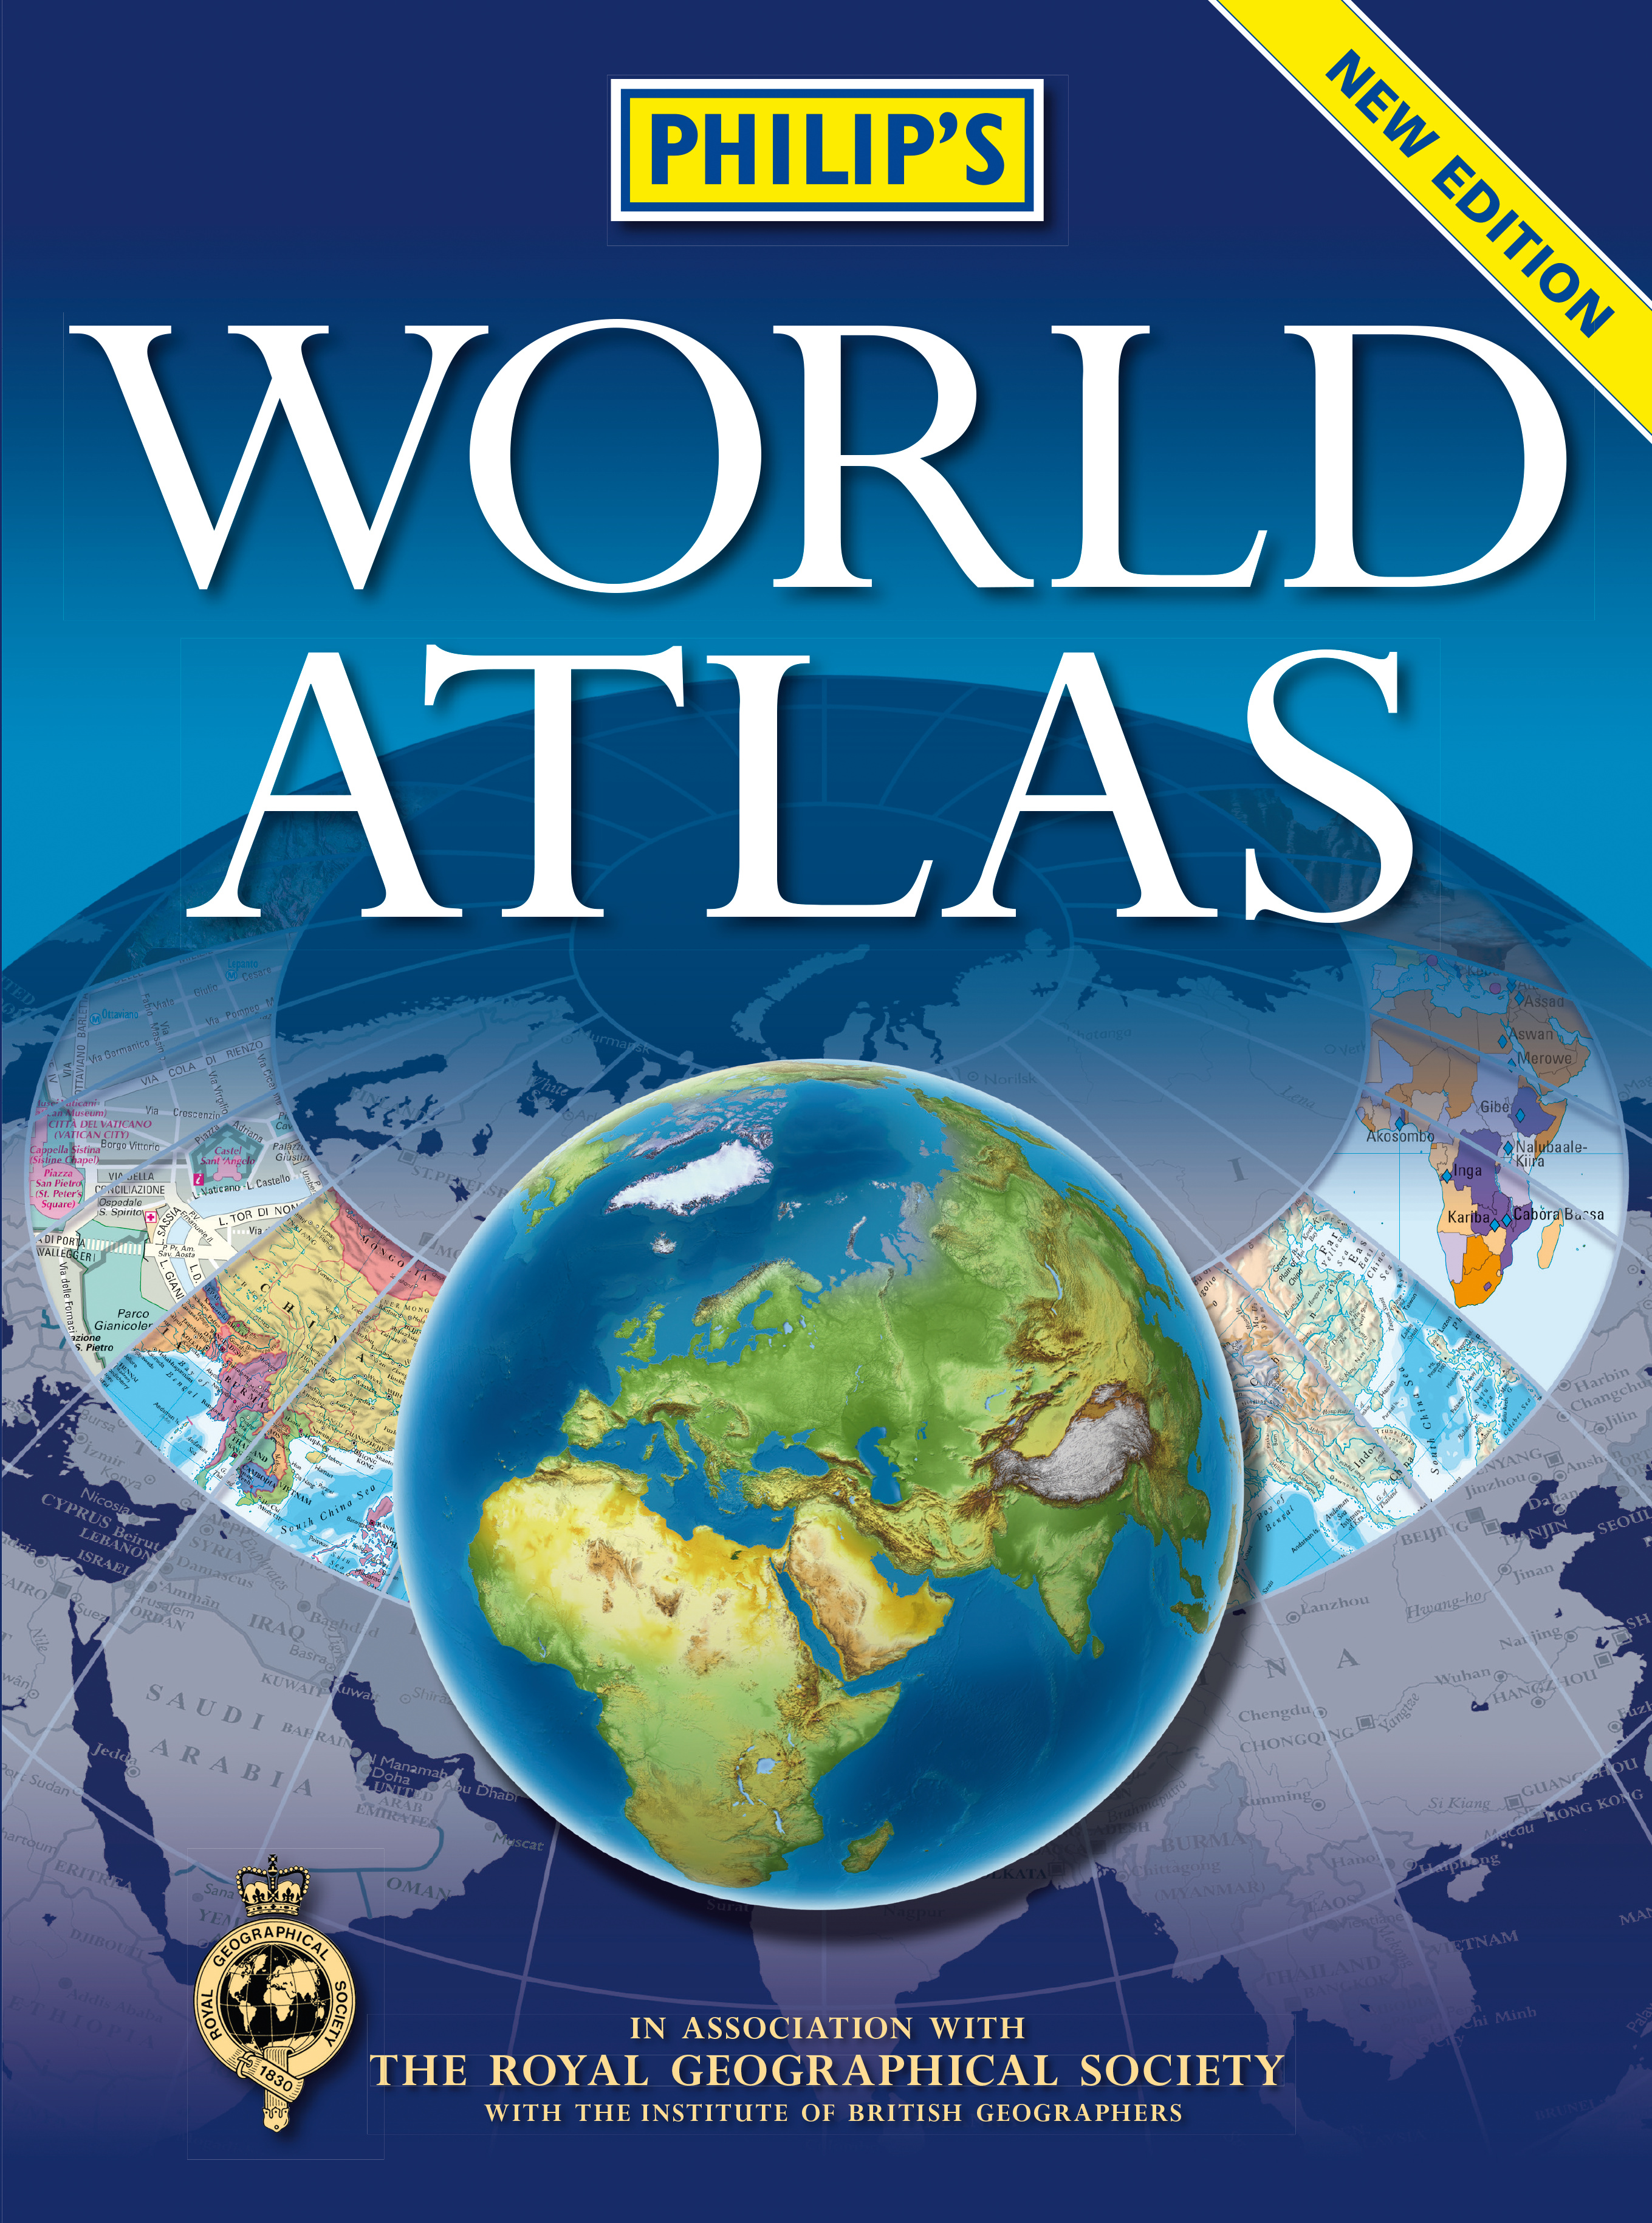 Philips world atlas paperback by philips maps books hachette philips world atlas paperback by philips maps books hachette australia gumiabroncs Choice Image